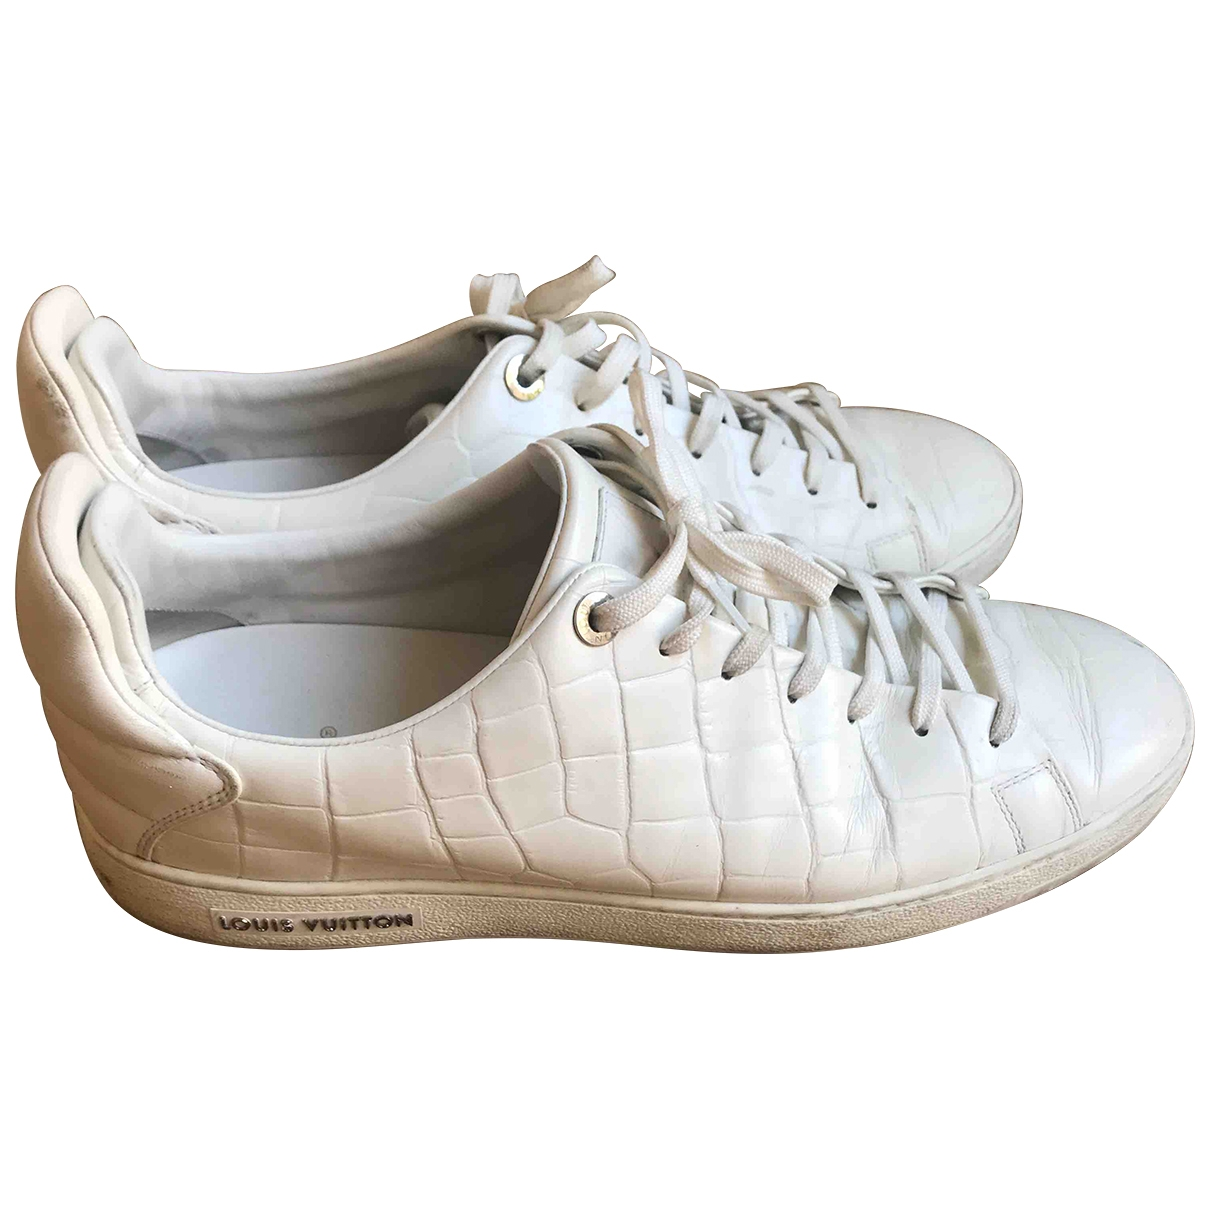 Louis Vuitton Frontrow White Leather Trainers for Men 9.5 UK